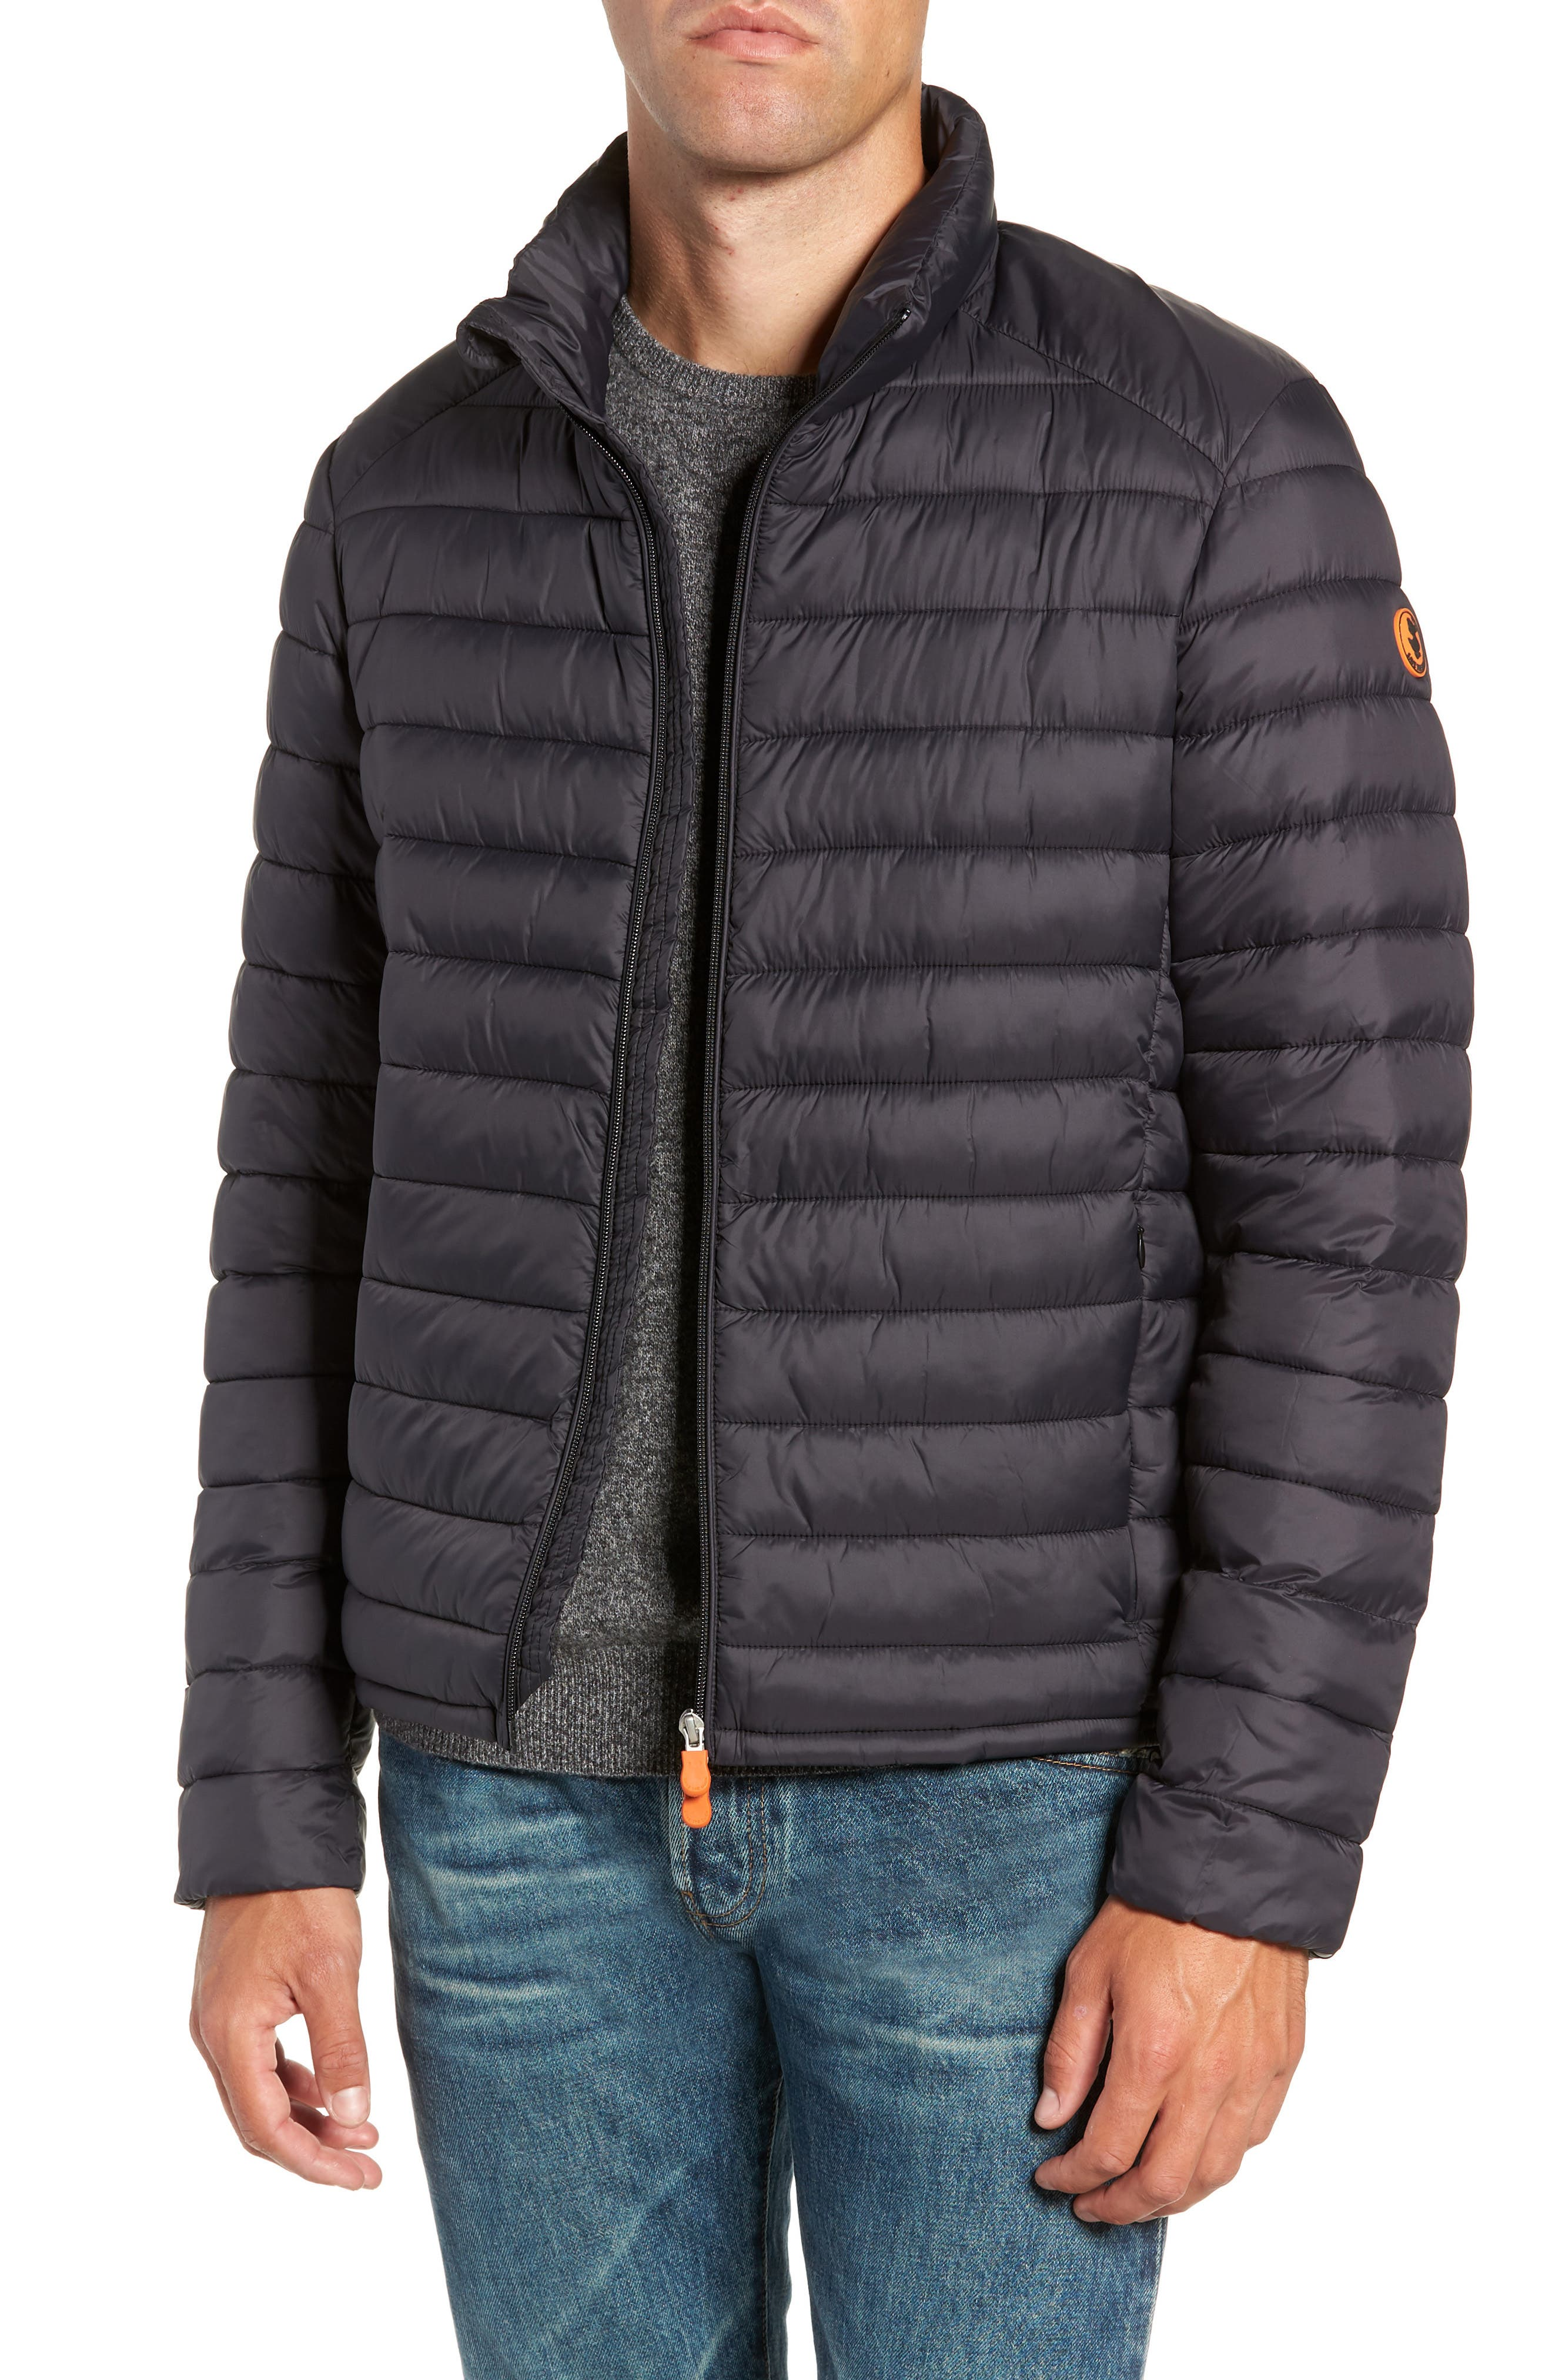 PLUMTECH<sup>®</sup> Insulated Packable Jacket,                         Main,                         color, 001